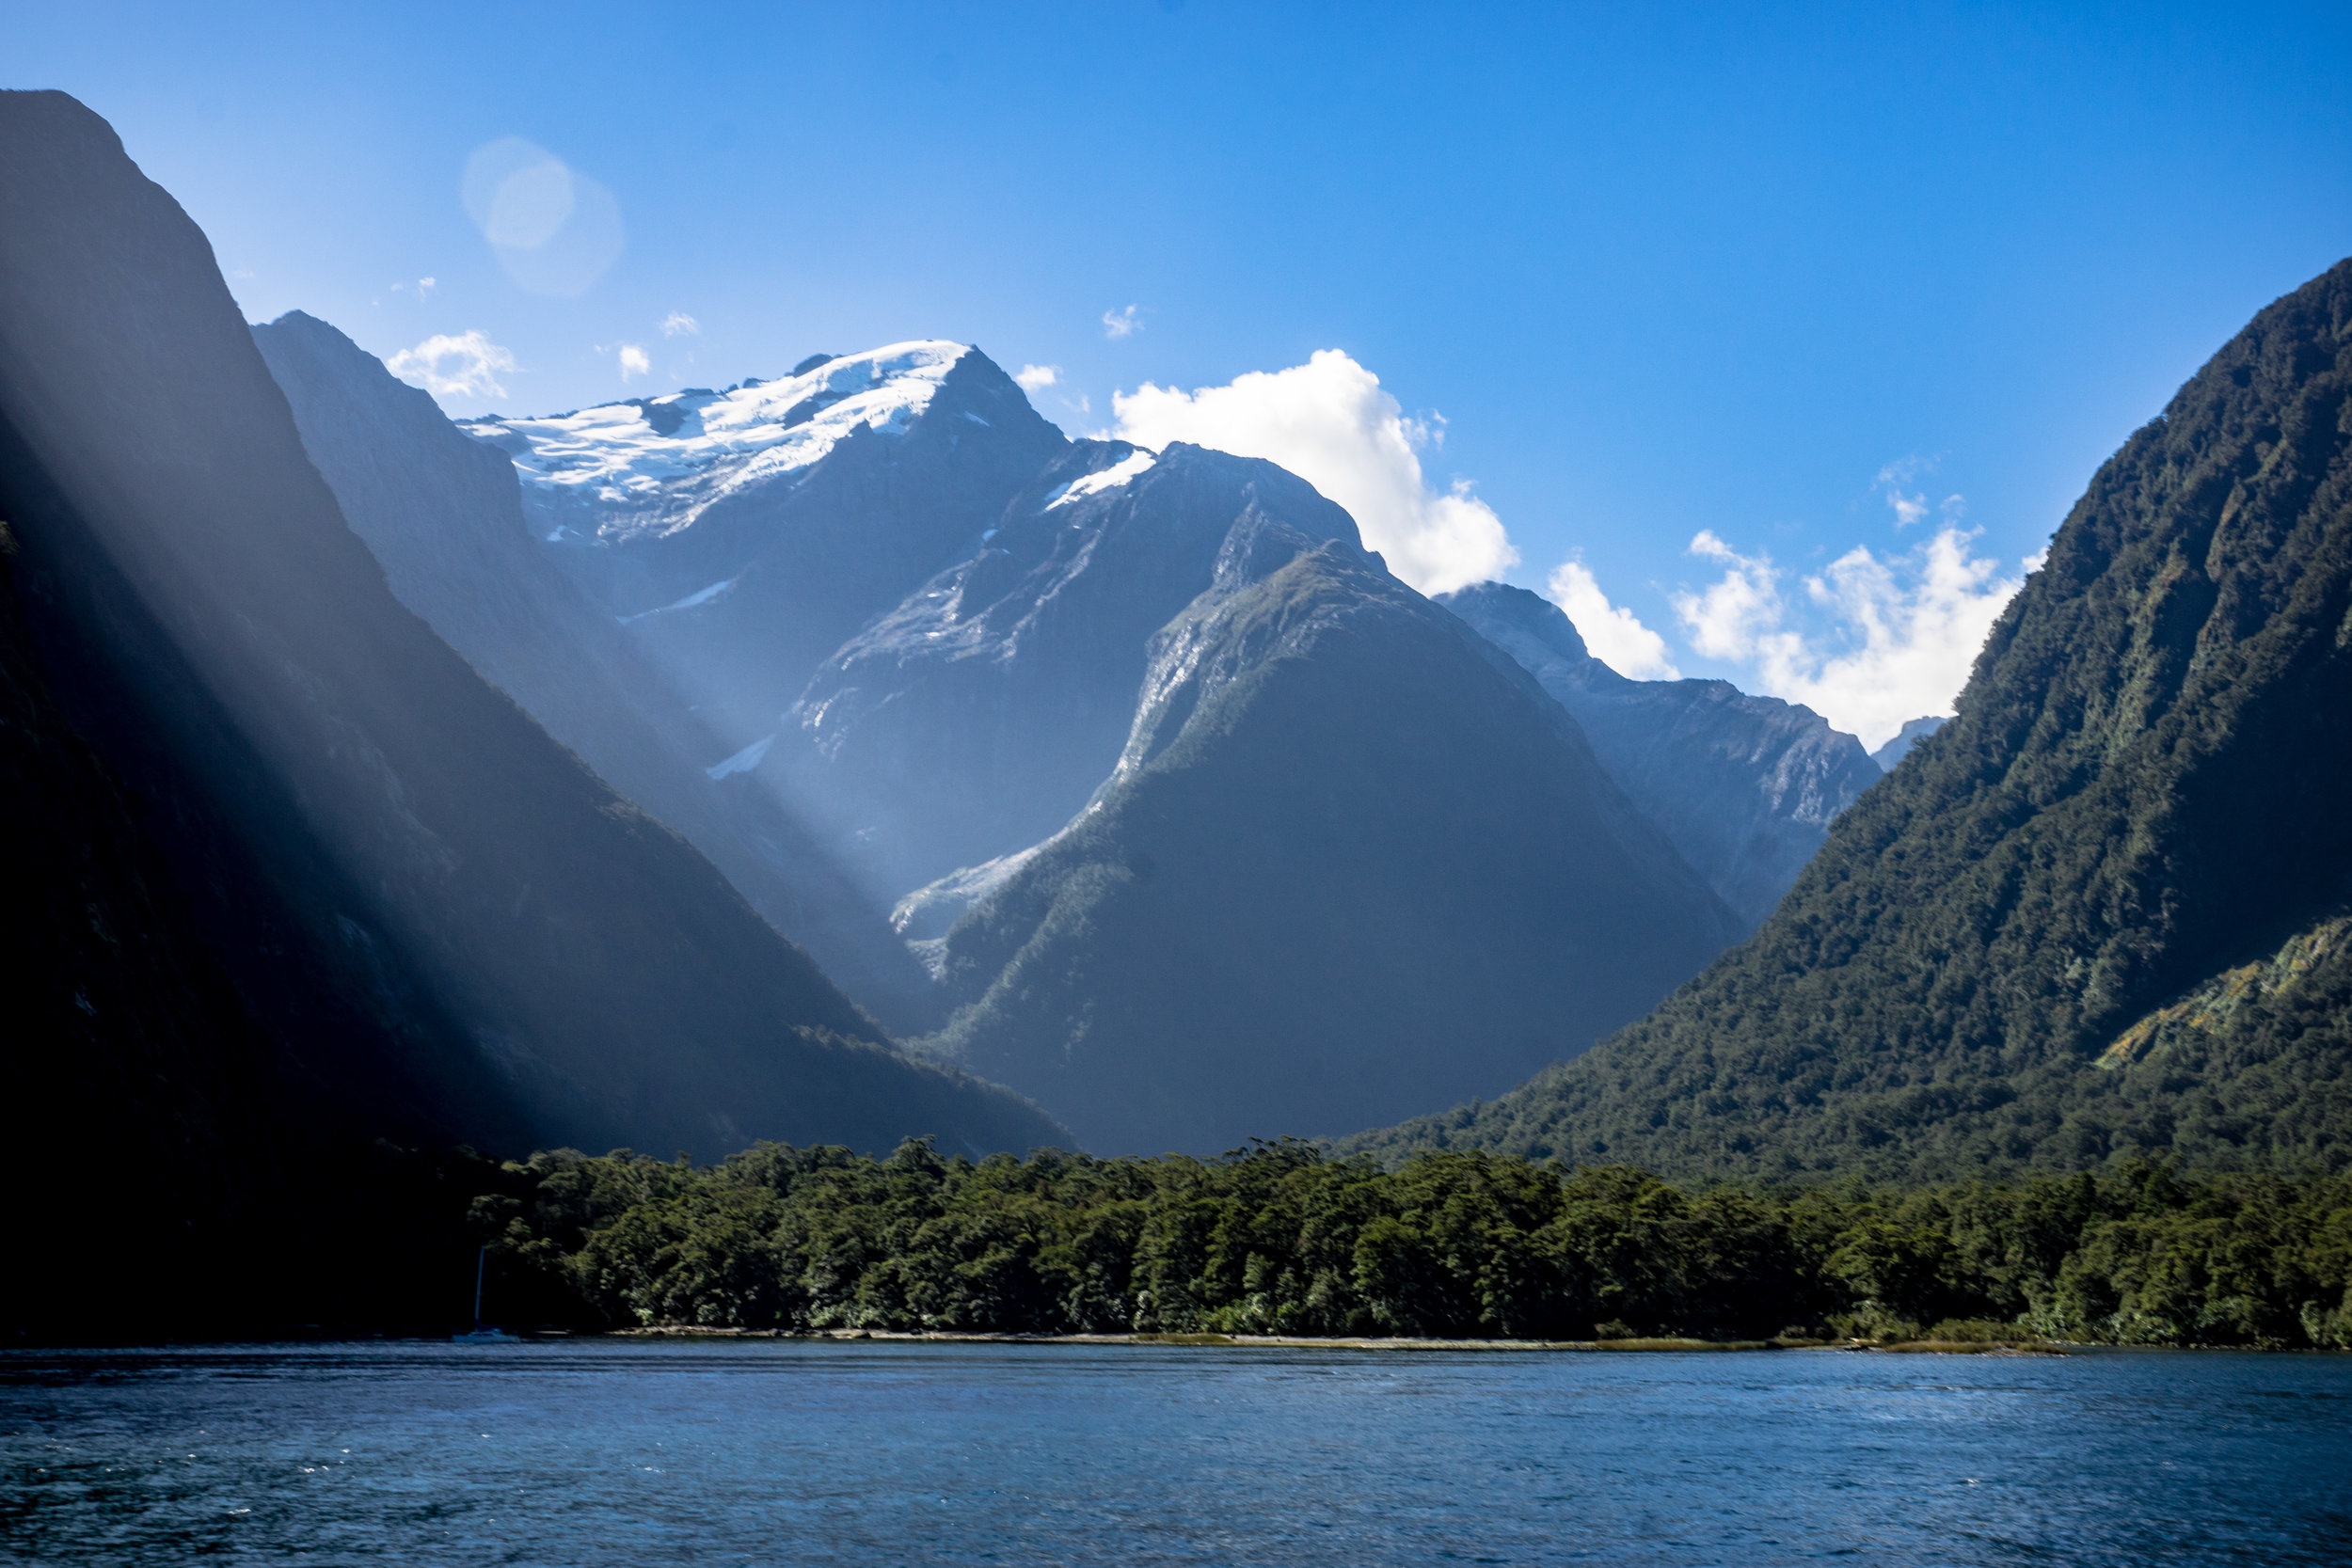 The classic photo of Milford Sound